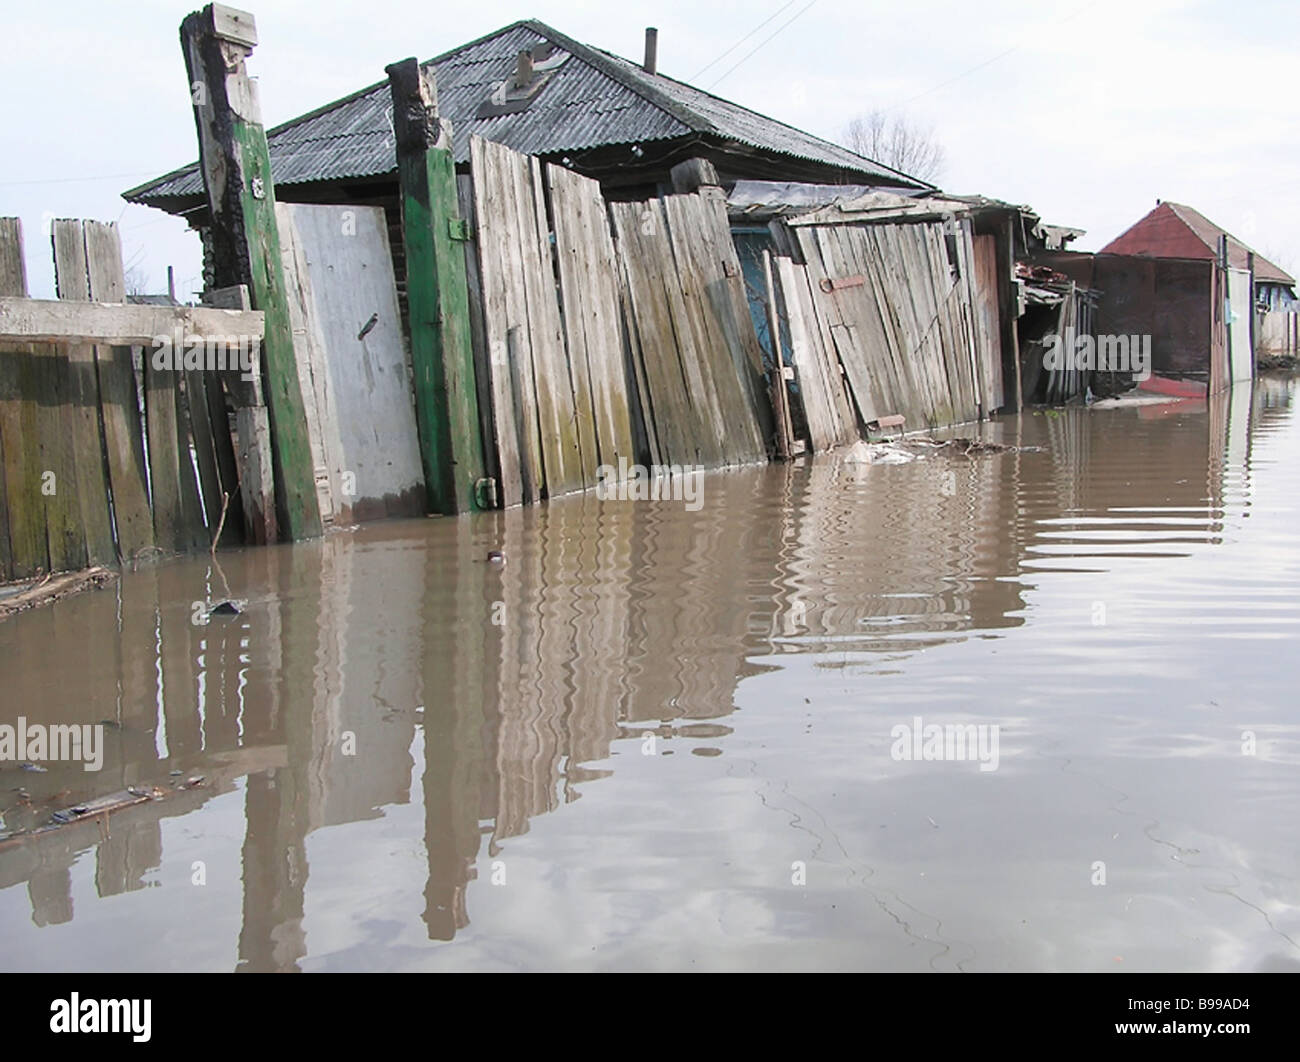 The second wave of floods coming to the Altai region continues the underflooding of residential houses in Biysk - Stock Image